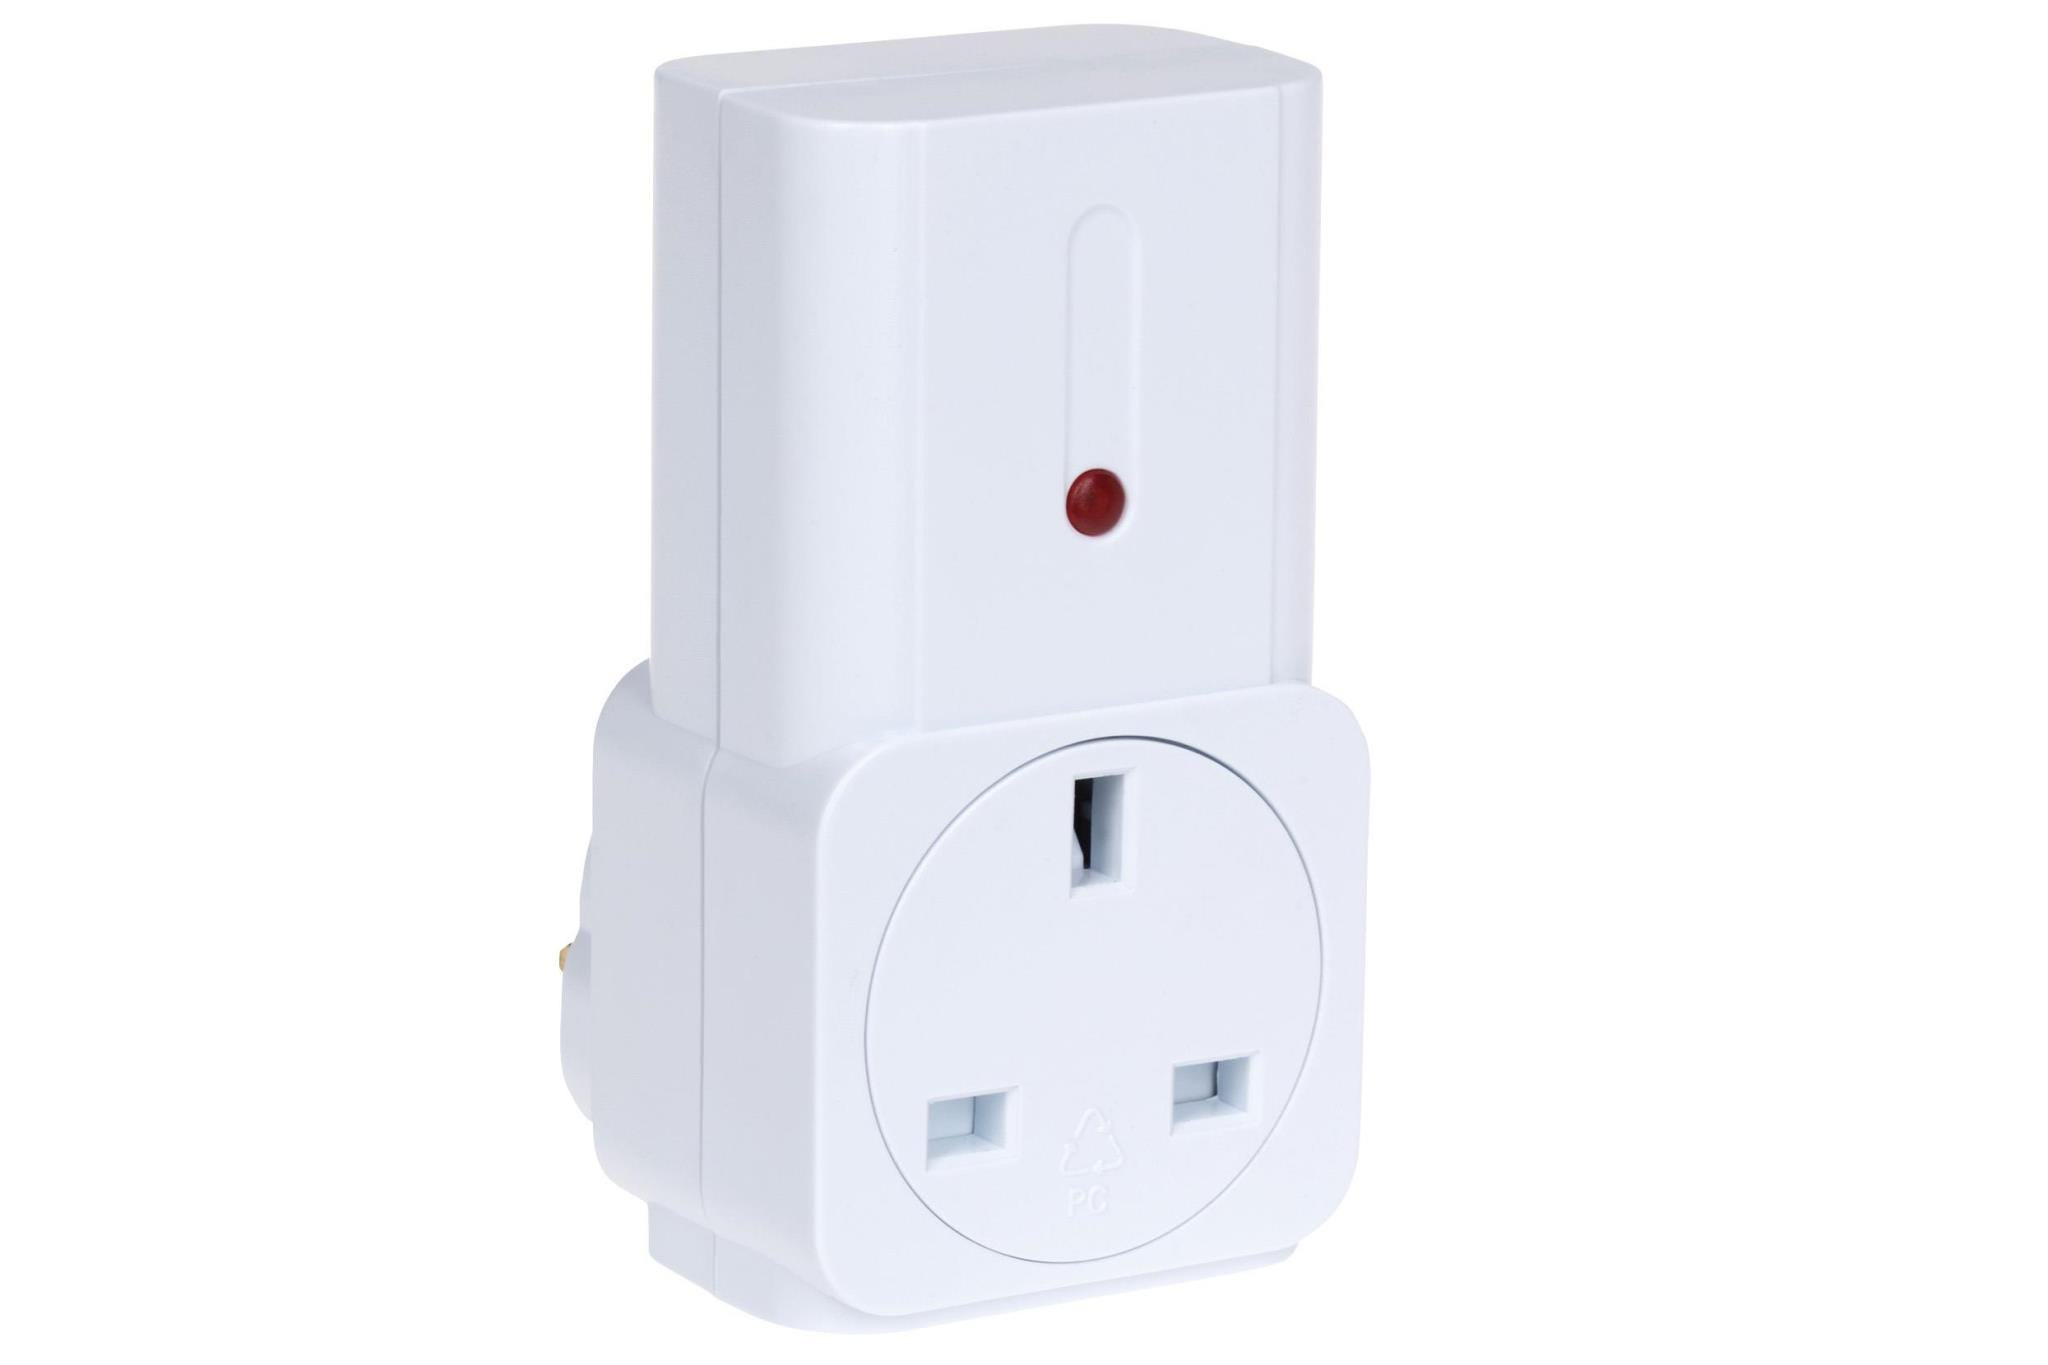 Maplin ORB Remote Controlled Mains Plug Socket - White - No Remote included